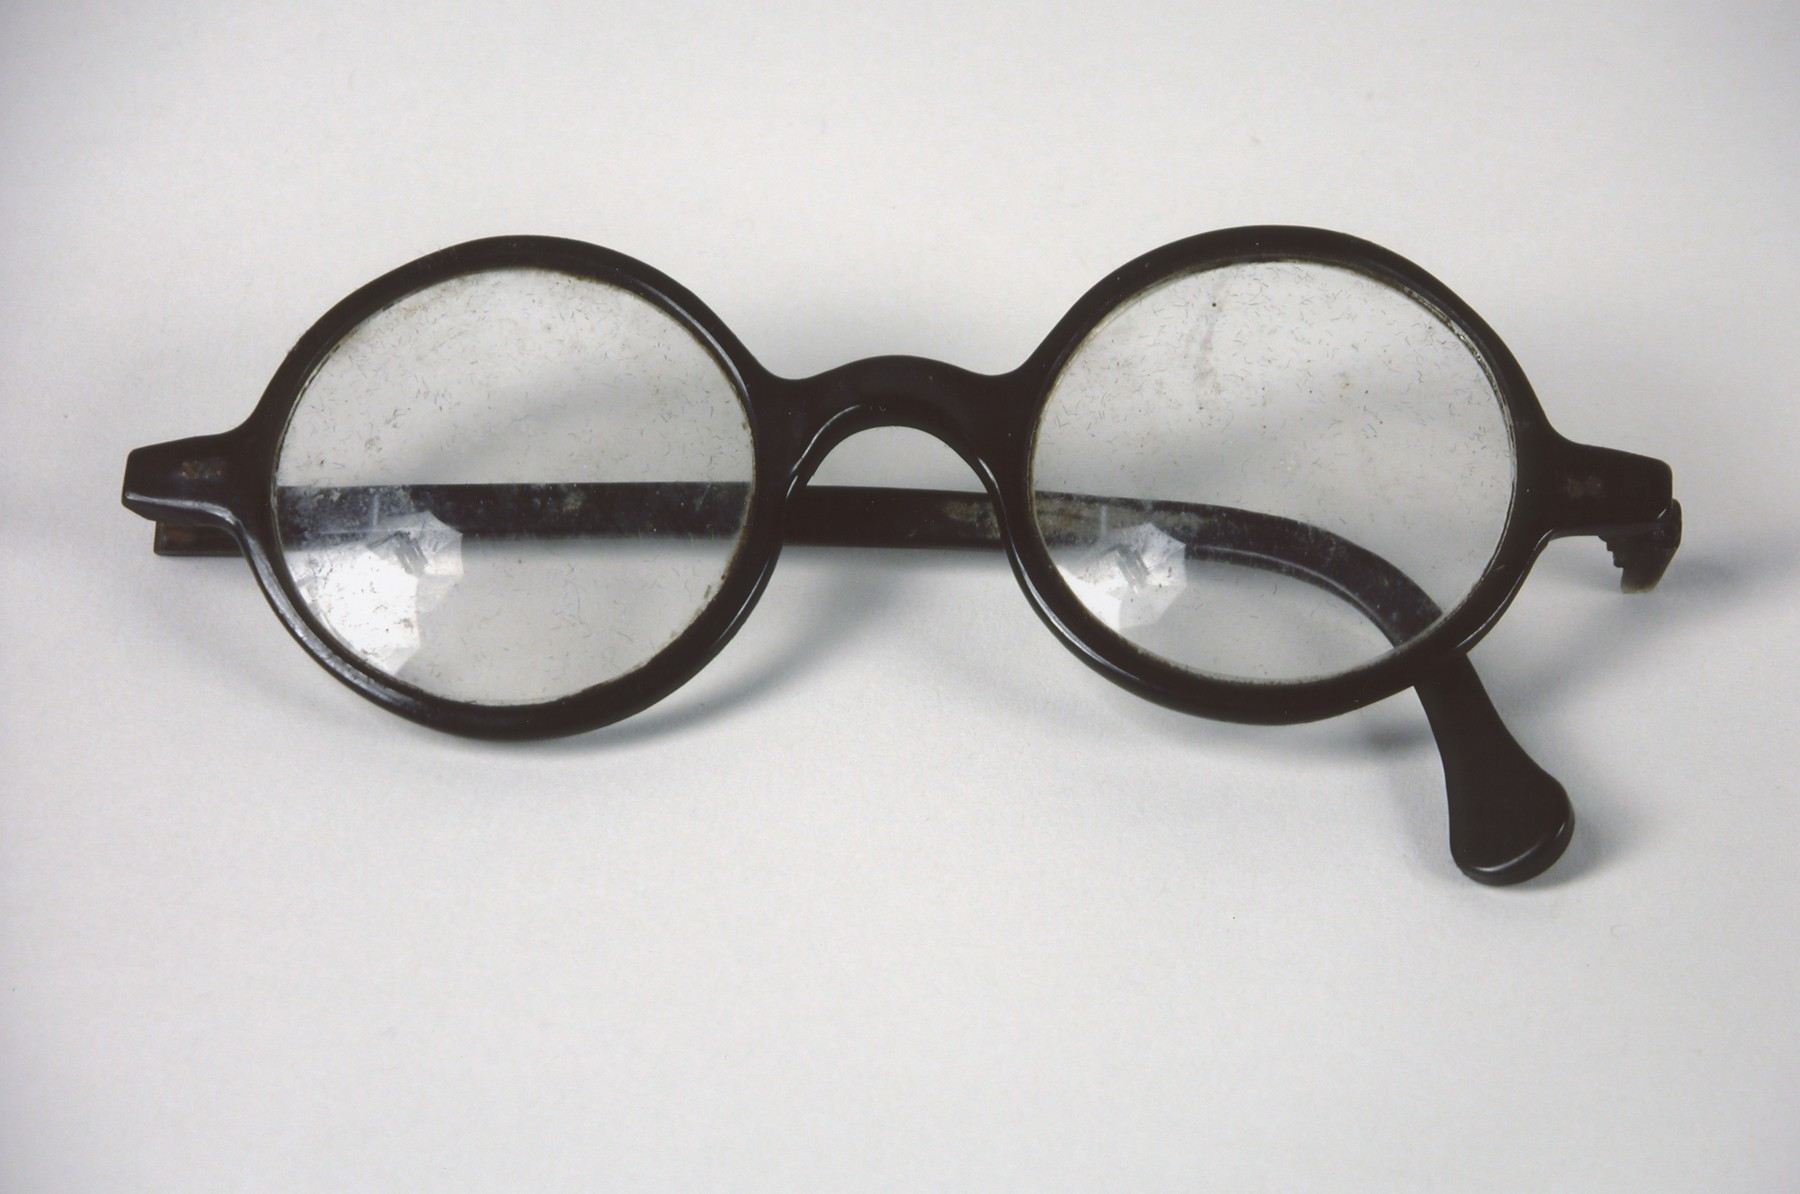 A pair of eyeglasses belonging to Bela Gondas, a Jewish physician, who was a passenger on the Kasztner rescue train.